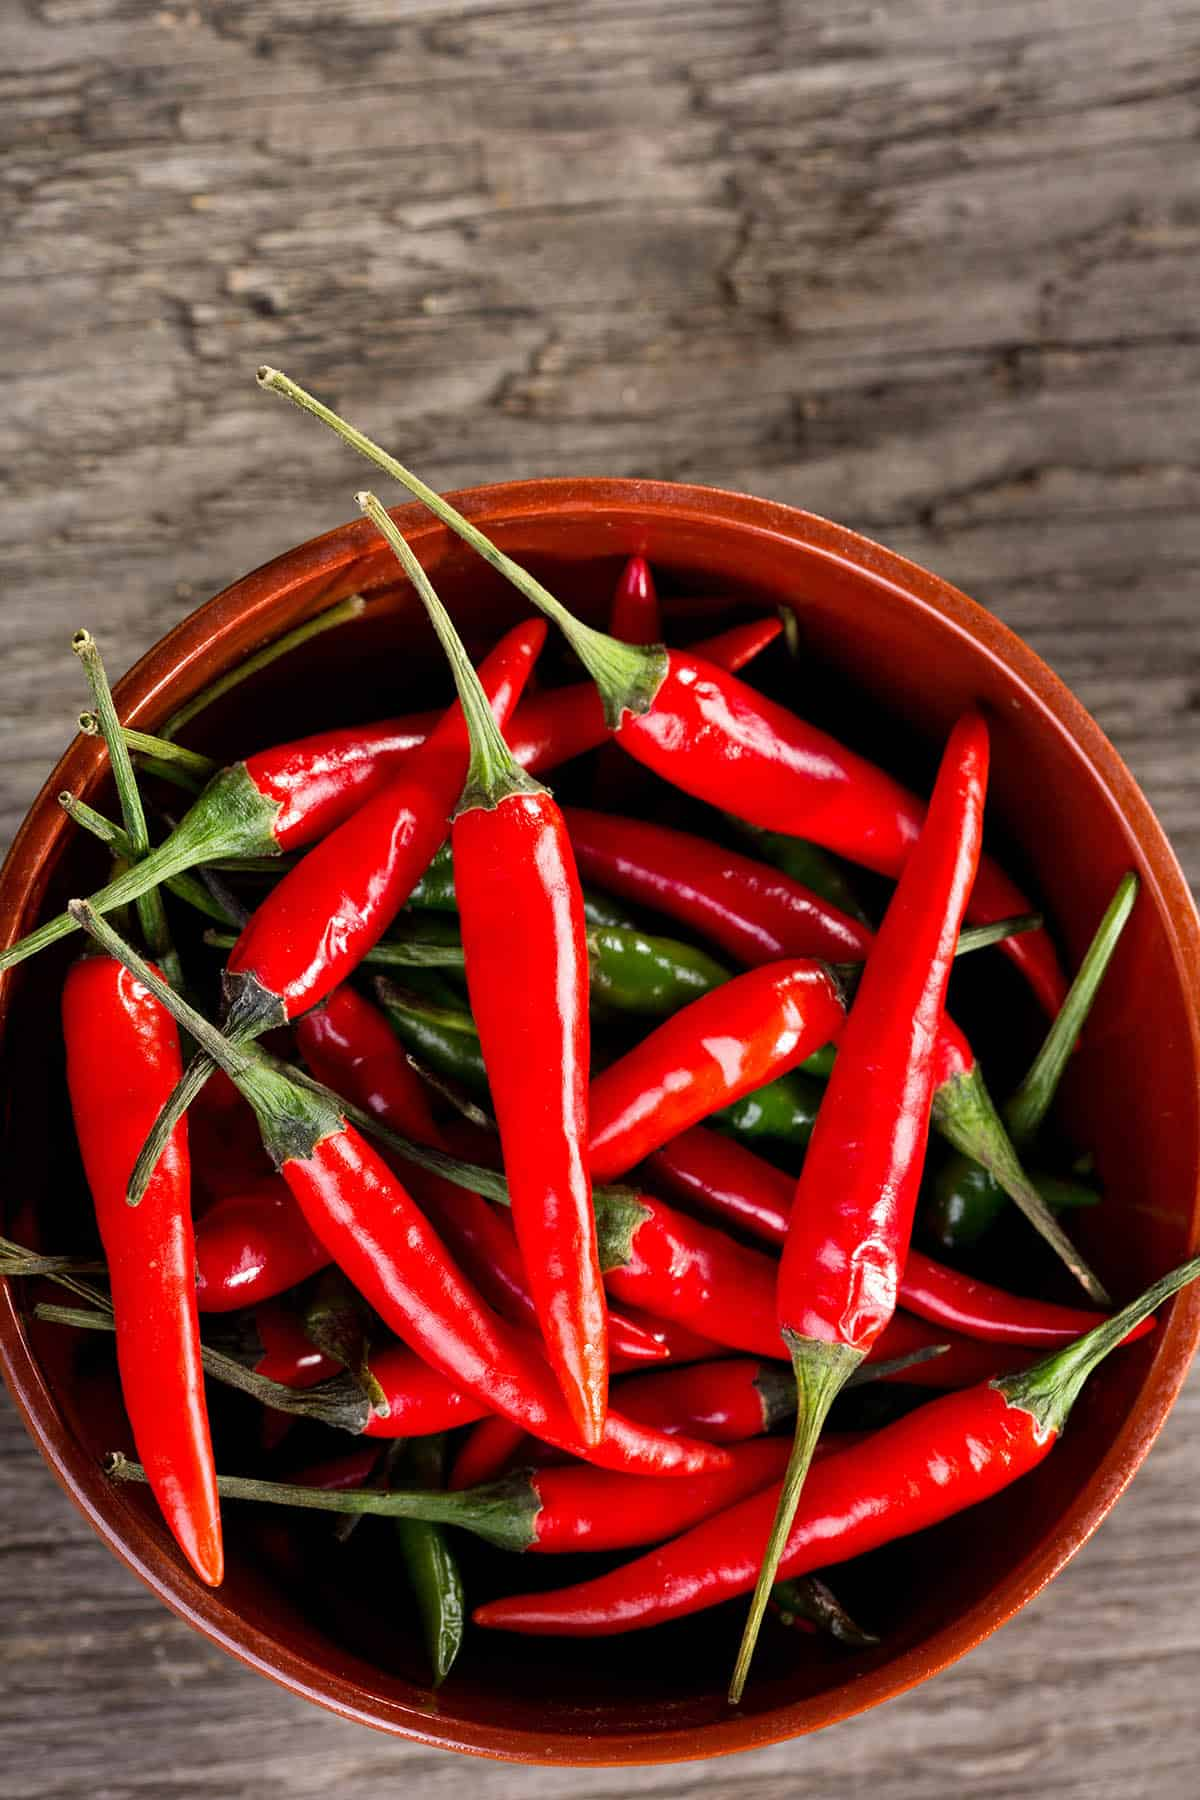 Malagueta Chili Peppers